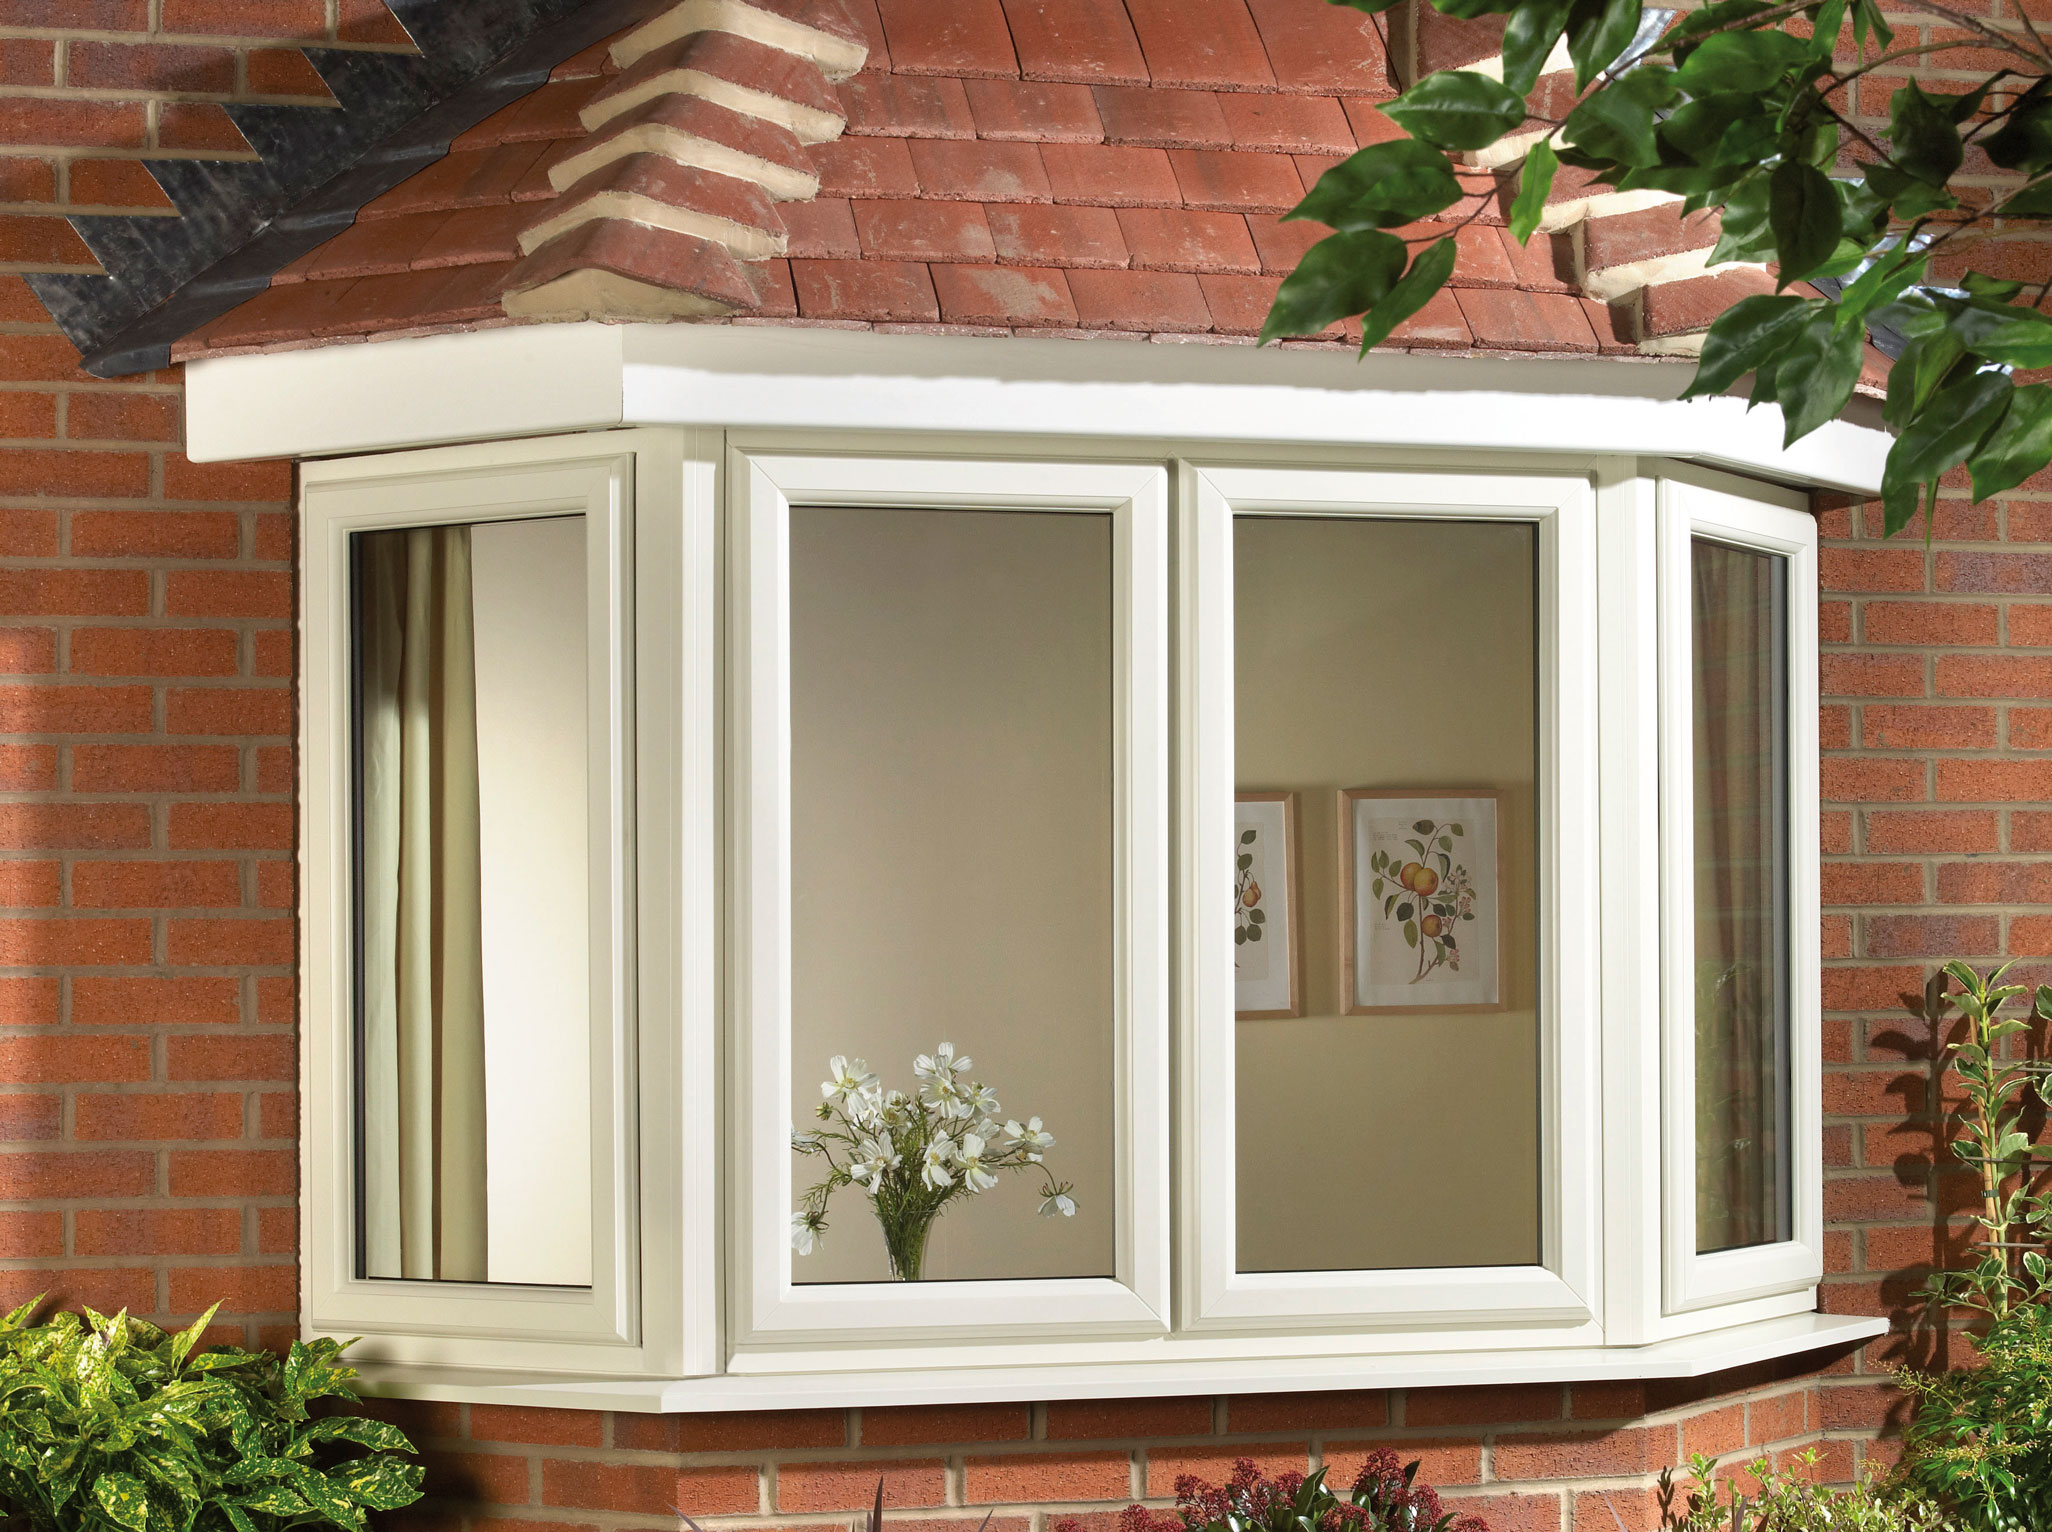 upvc windows price stoke-on-trent